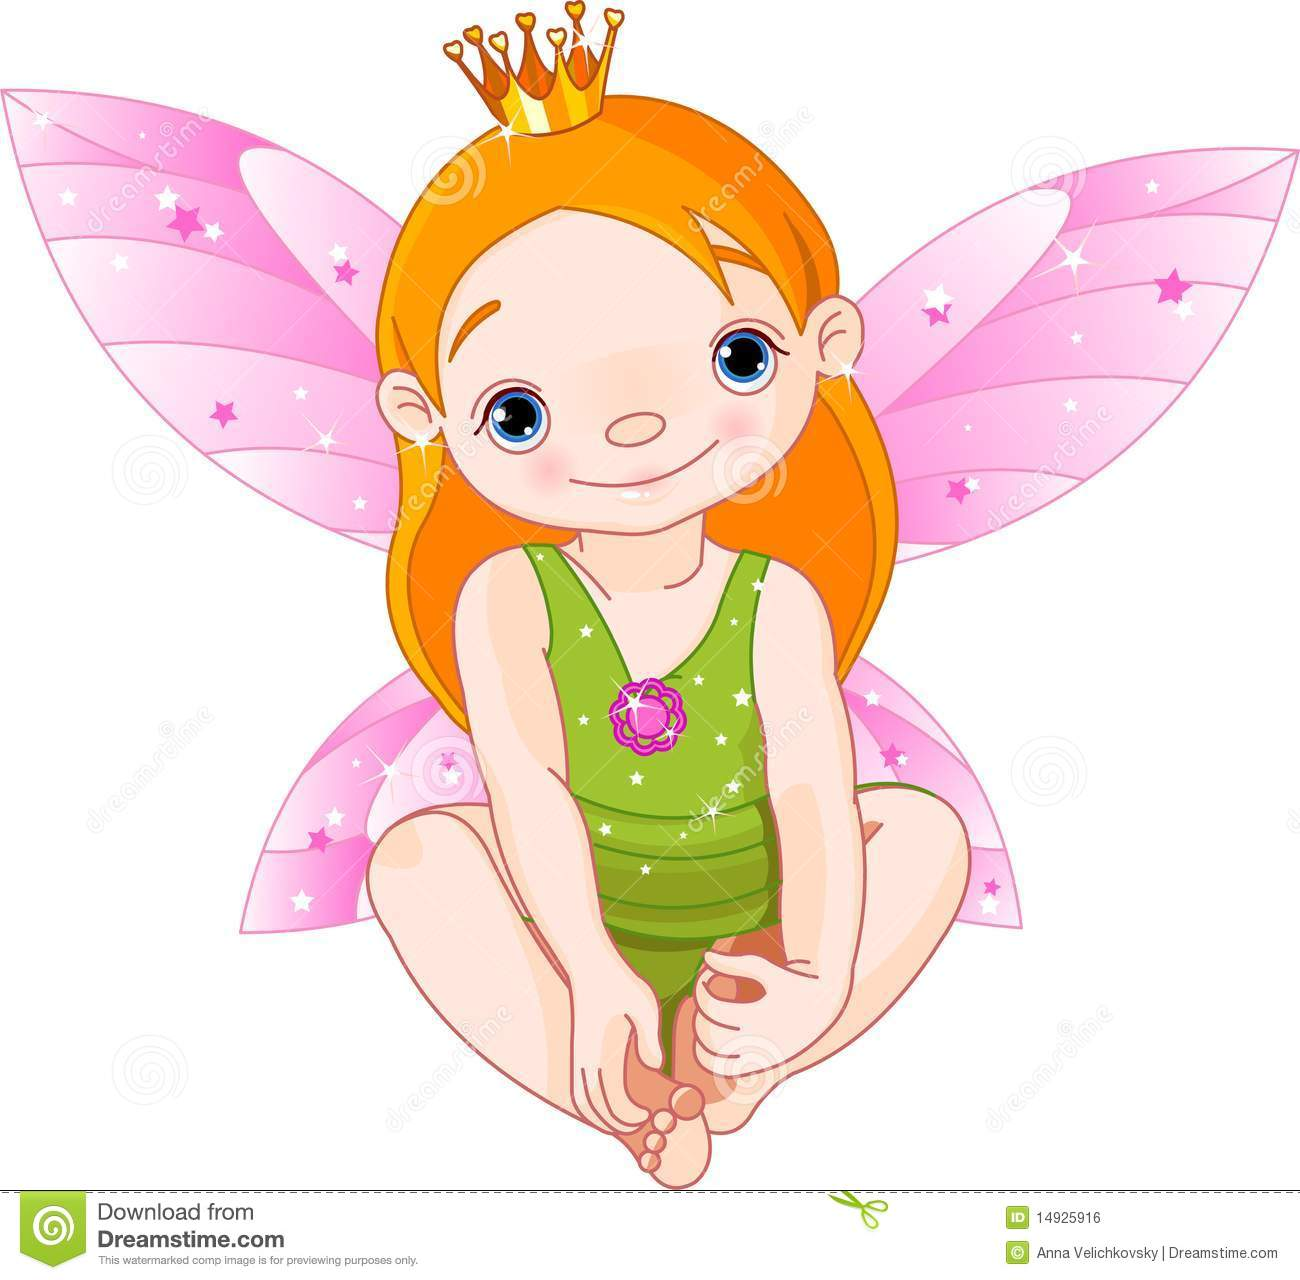 Little Fairy Princess Royalty Free Stock Image - Image: 14925916